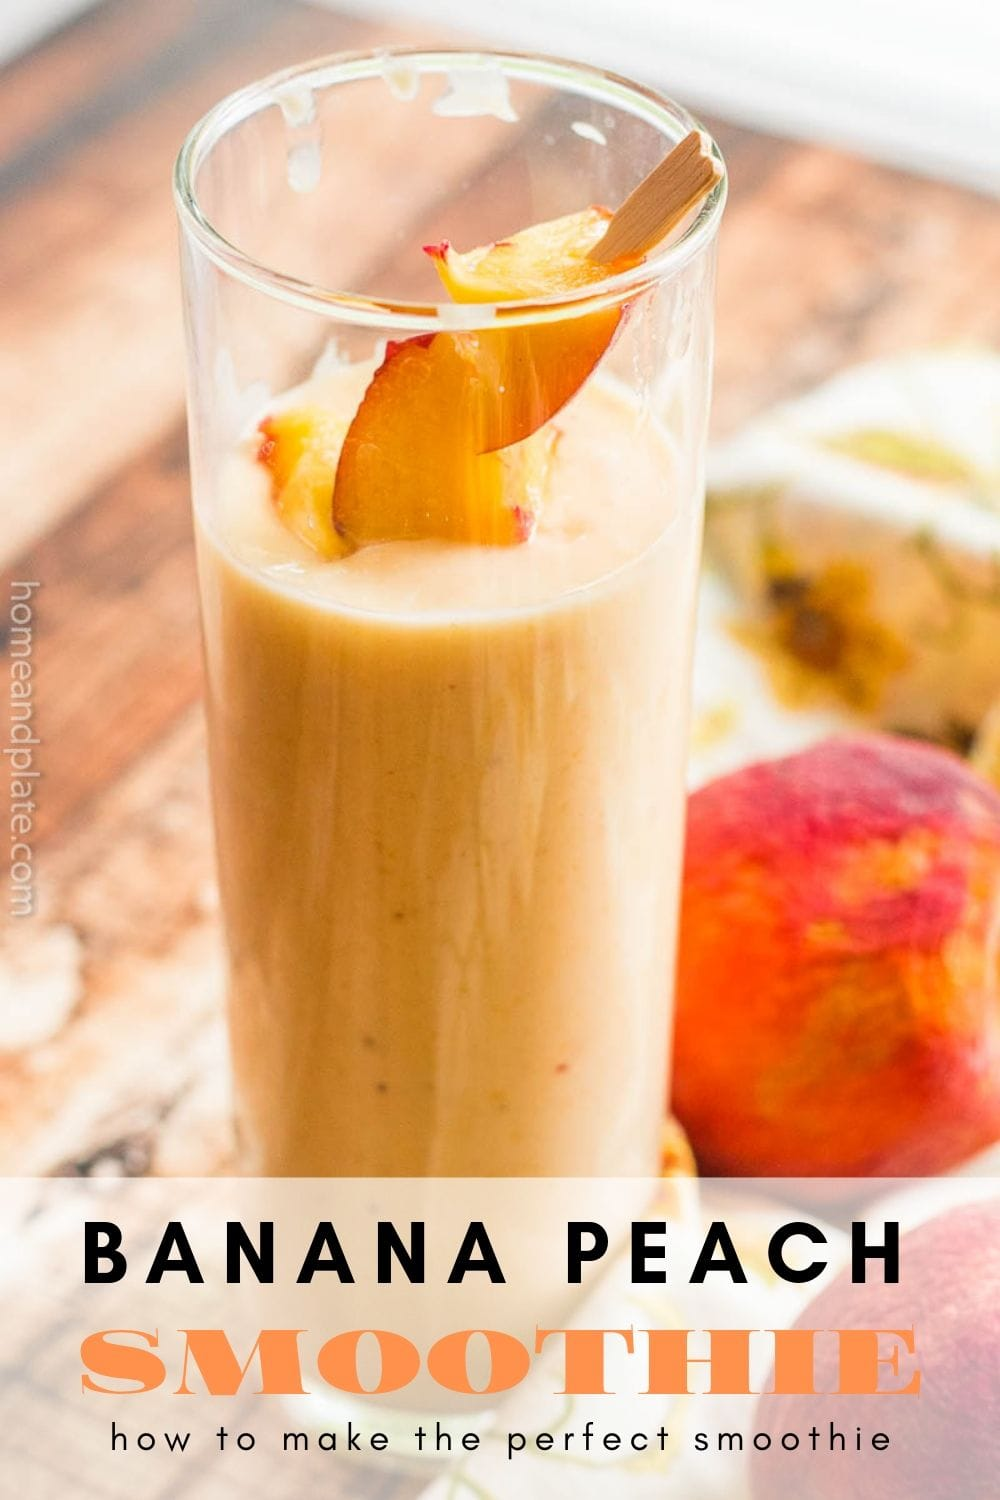 This delicious banana peach smoothie is made with fresh picked peaches and blended with green yogurt and ginger for a great way to start the morning.